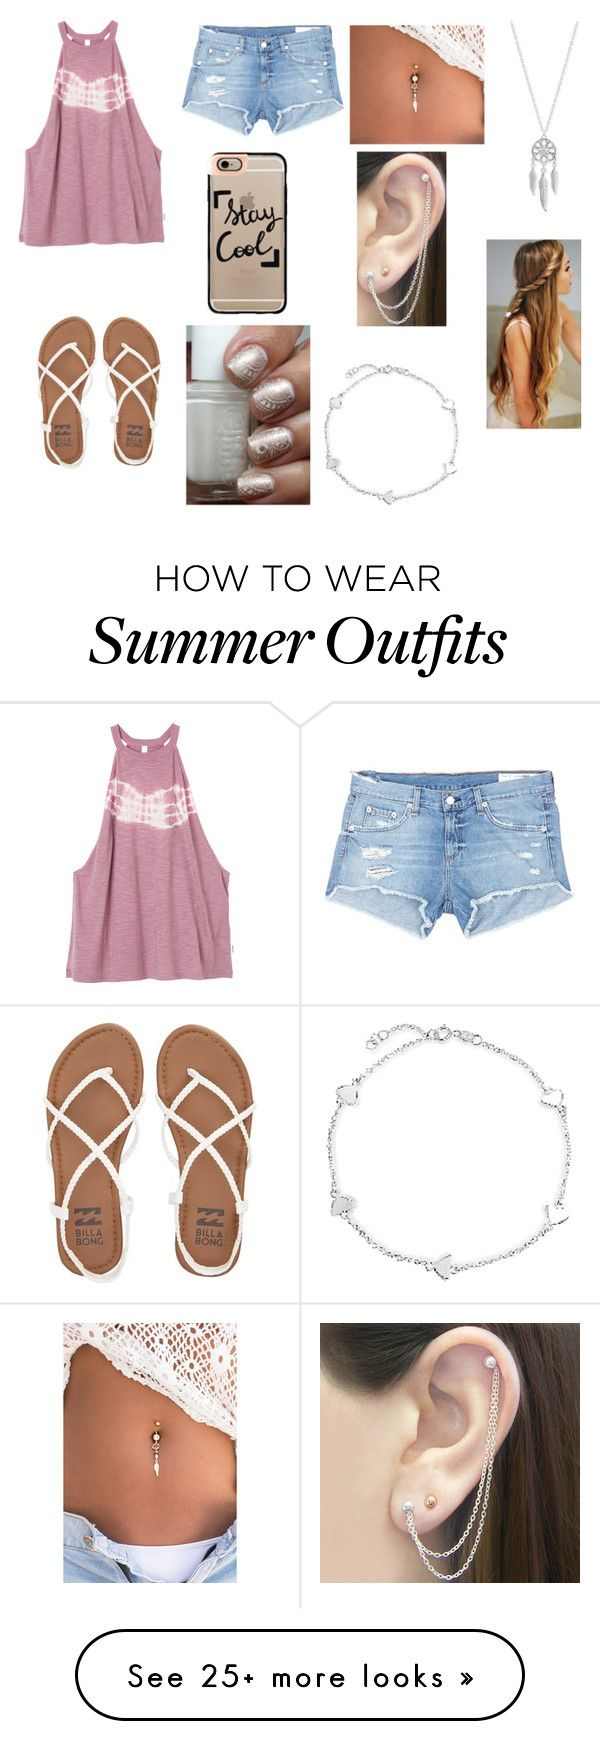 """Summer Outfit"" by simpsons-4-ever on Polyvore featuring RVCA, rag & bone/JEAN, Billabong, Casetify, Lucky Brand, Otis Jaxon and Bling Jewelry"